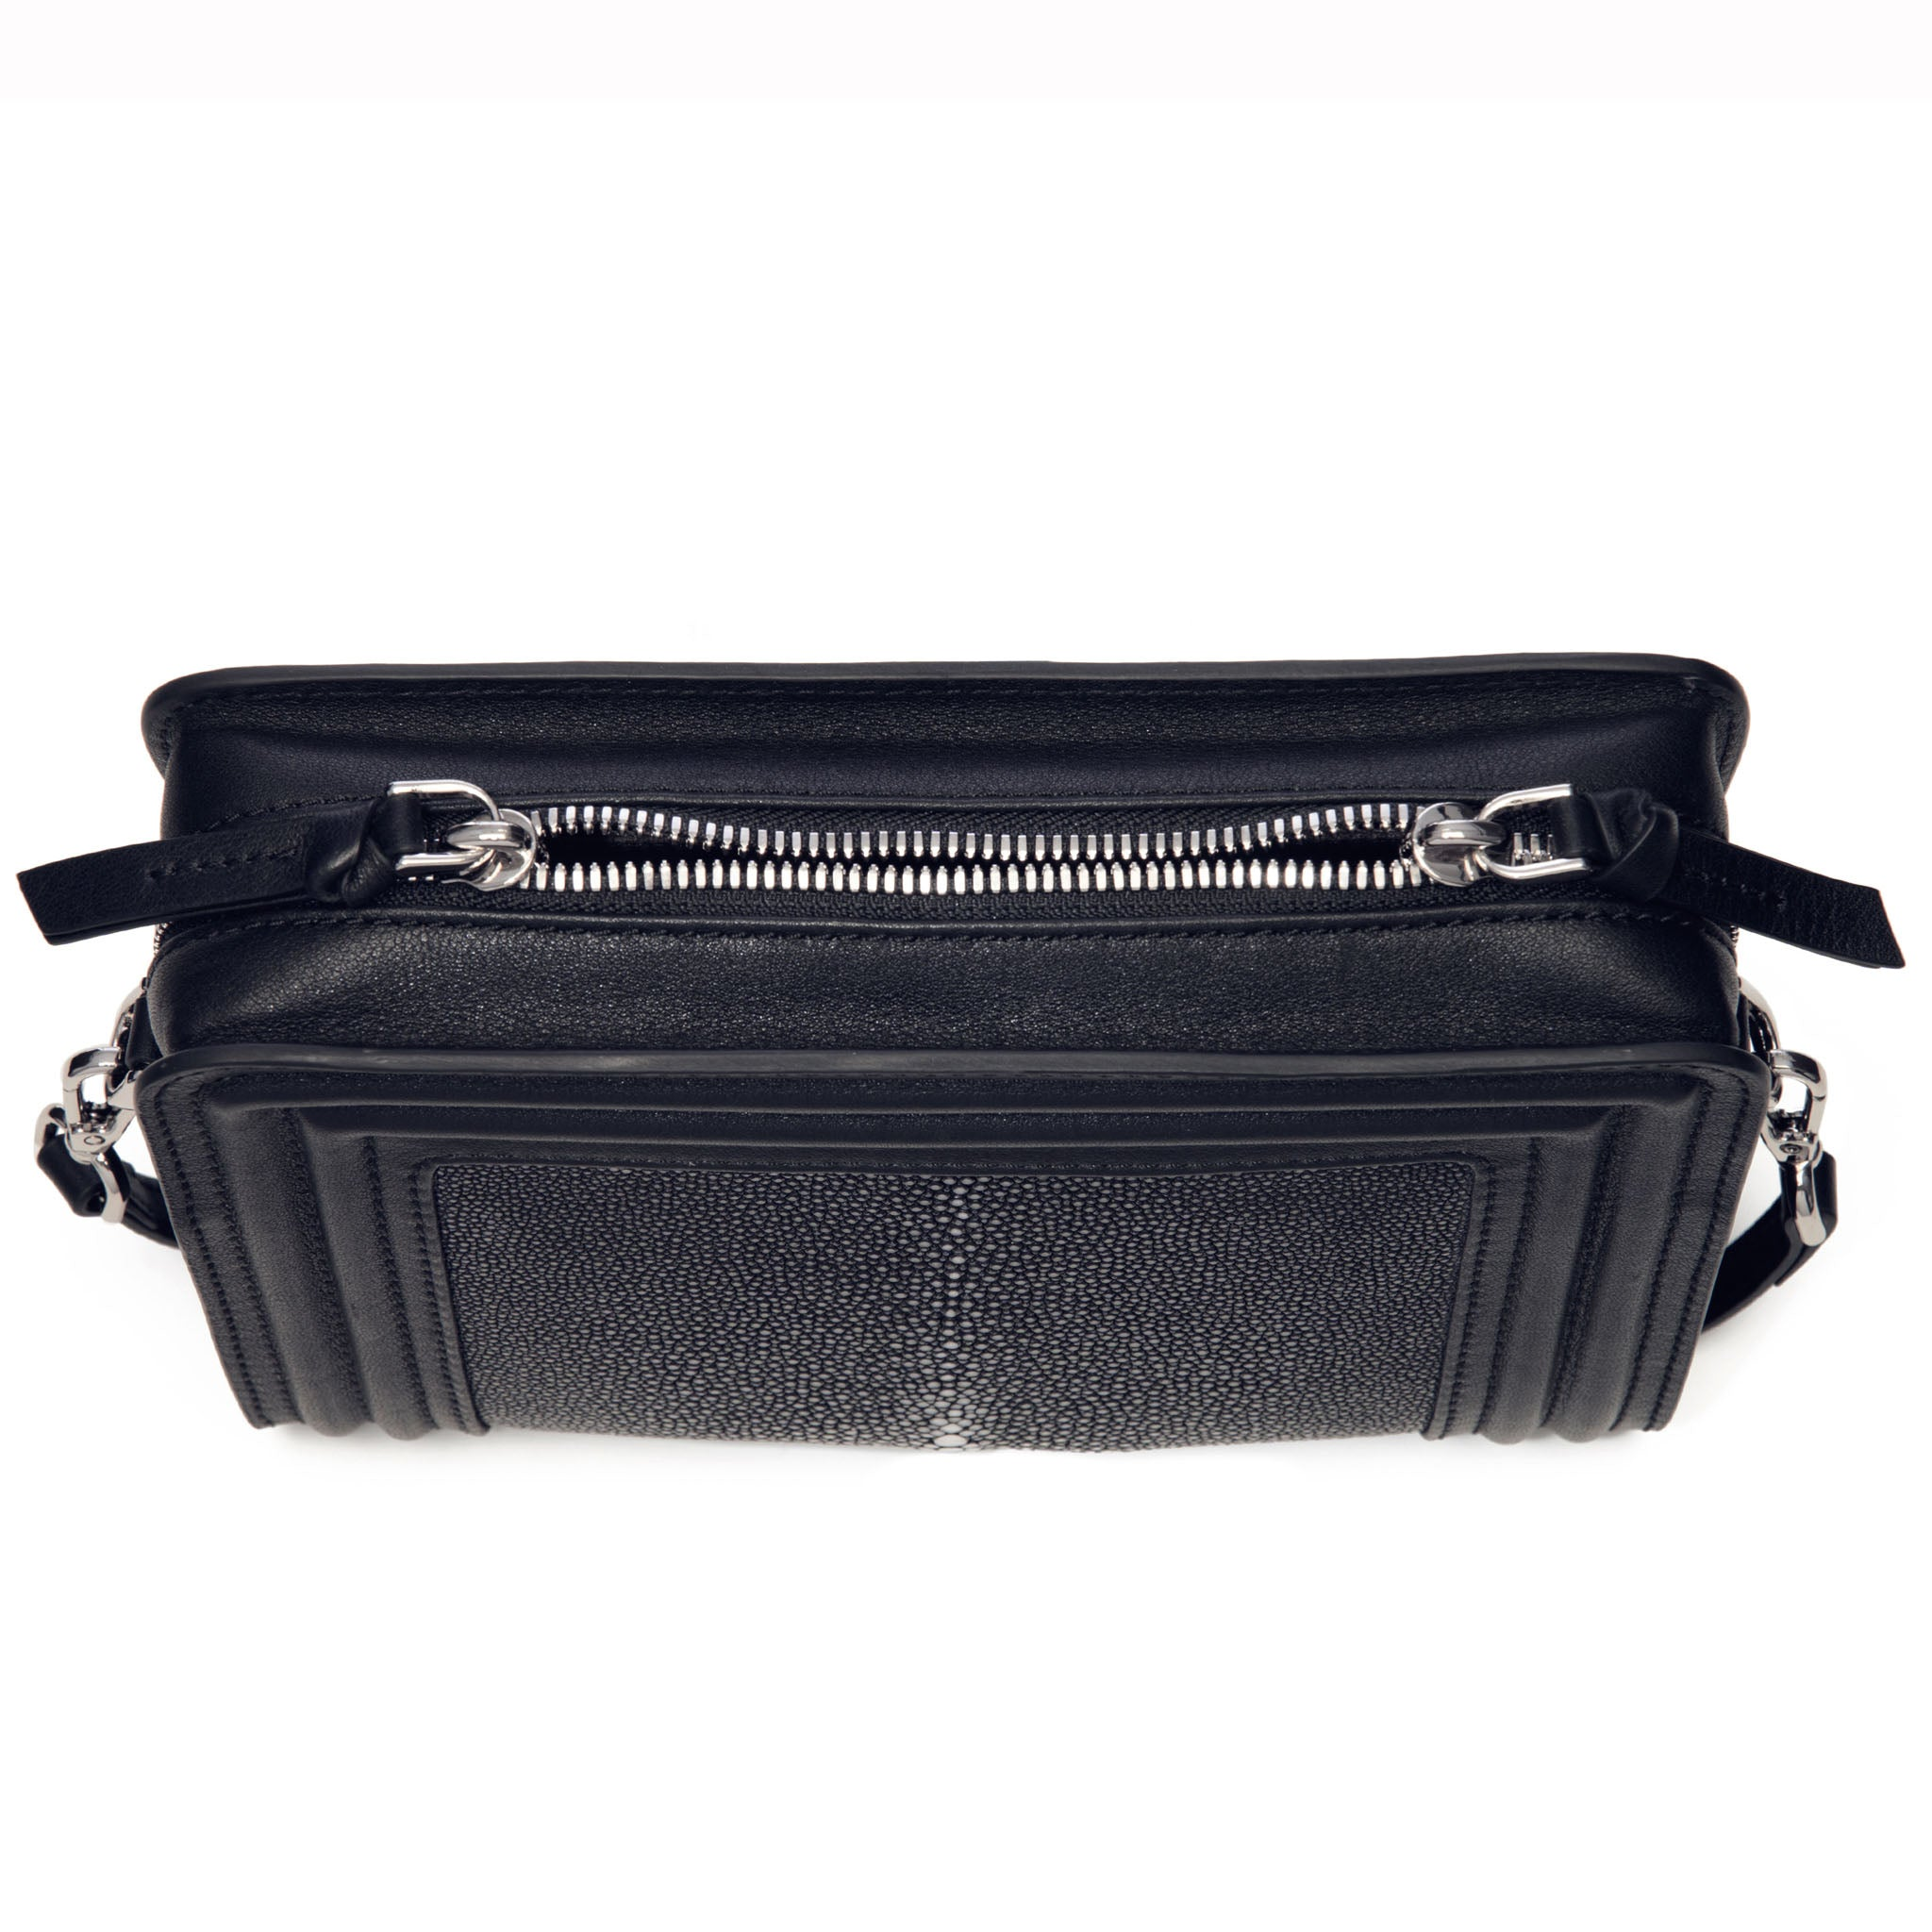 Black Corded Leather Frames Black Stingray Double Zipper Top Cross Body Bag Top View Nora - Vivo Direct